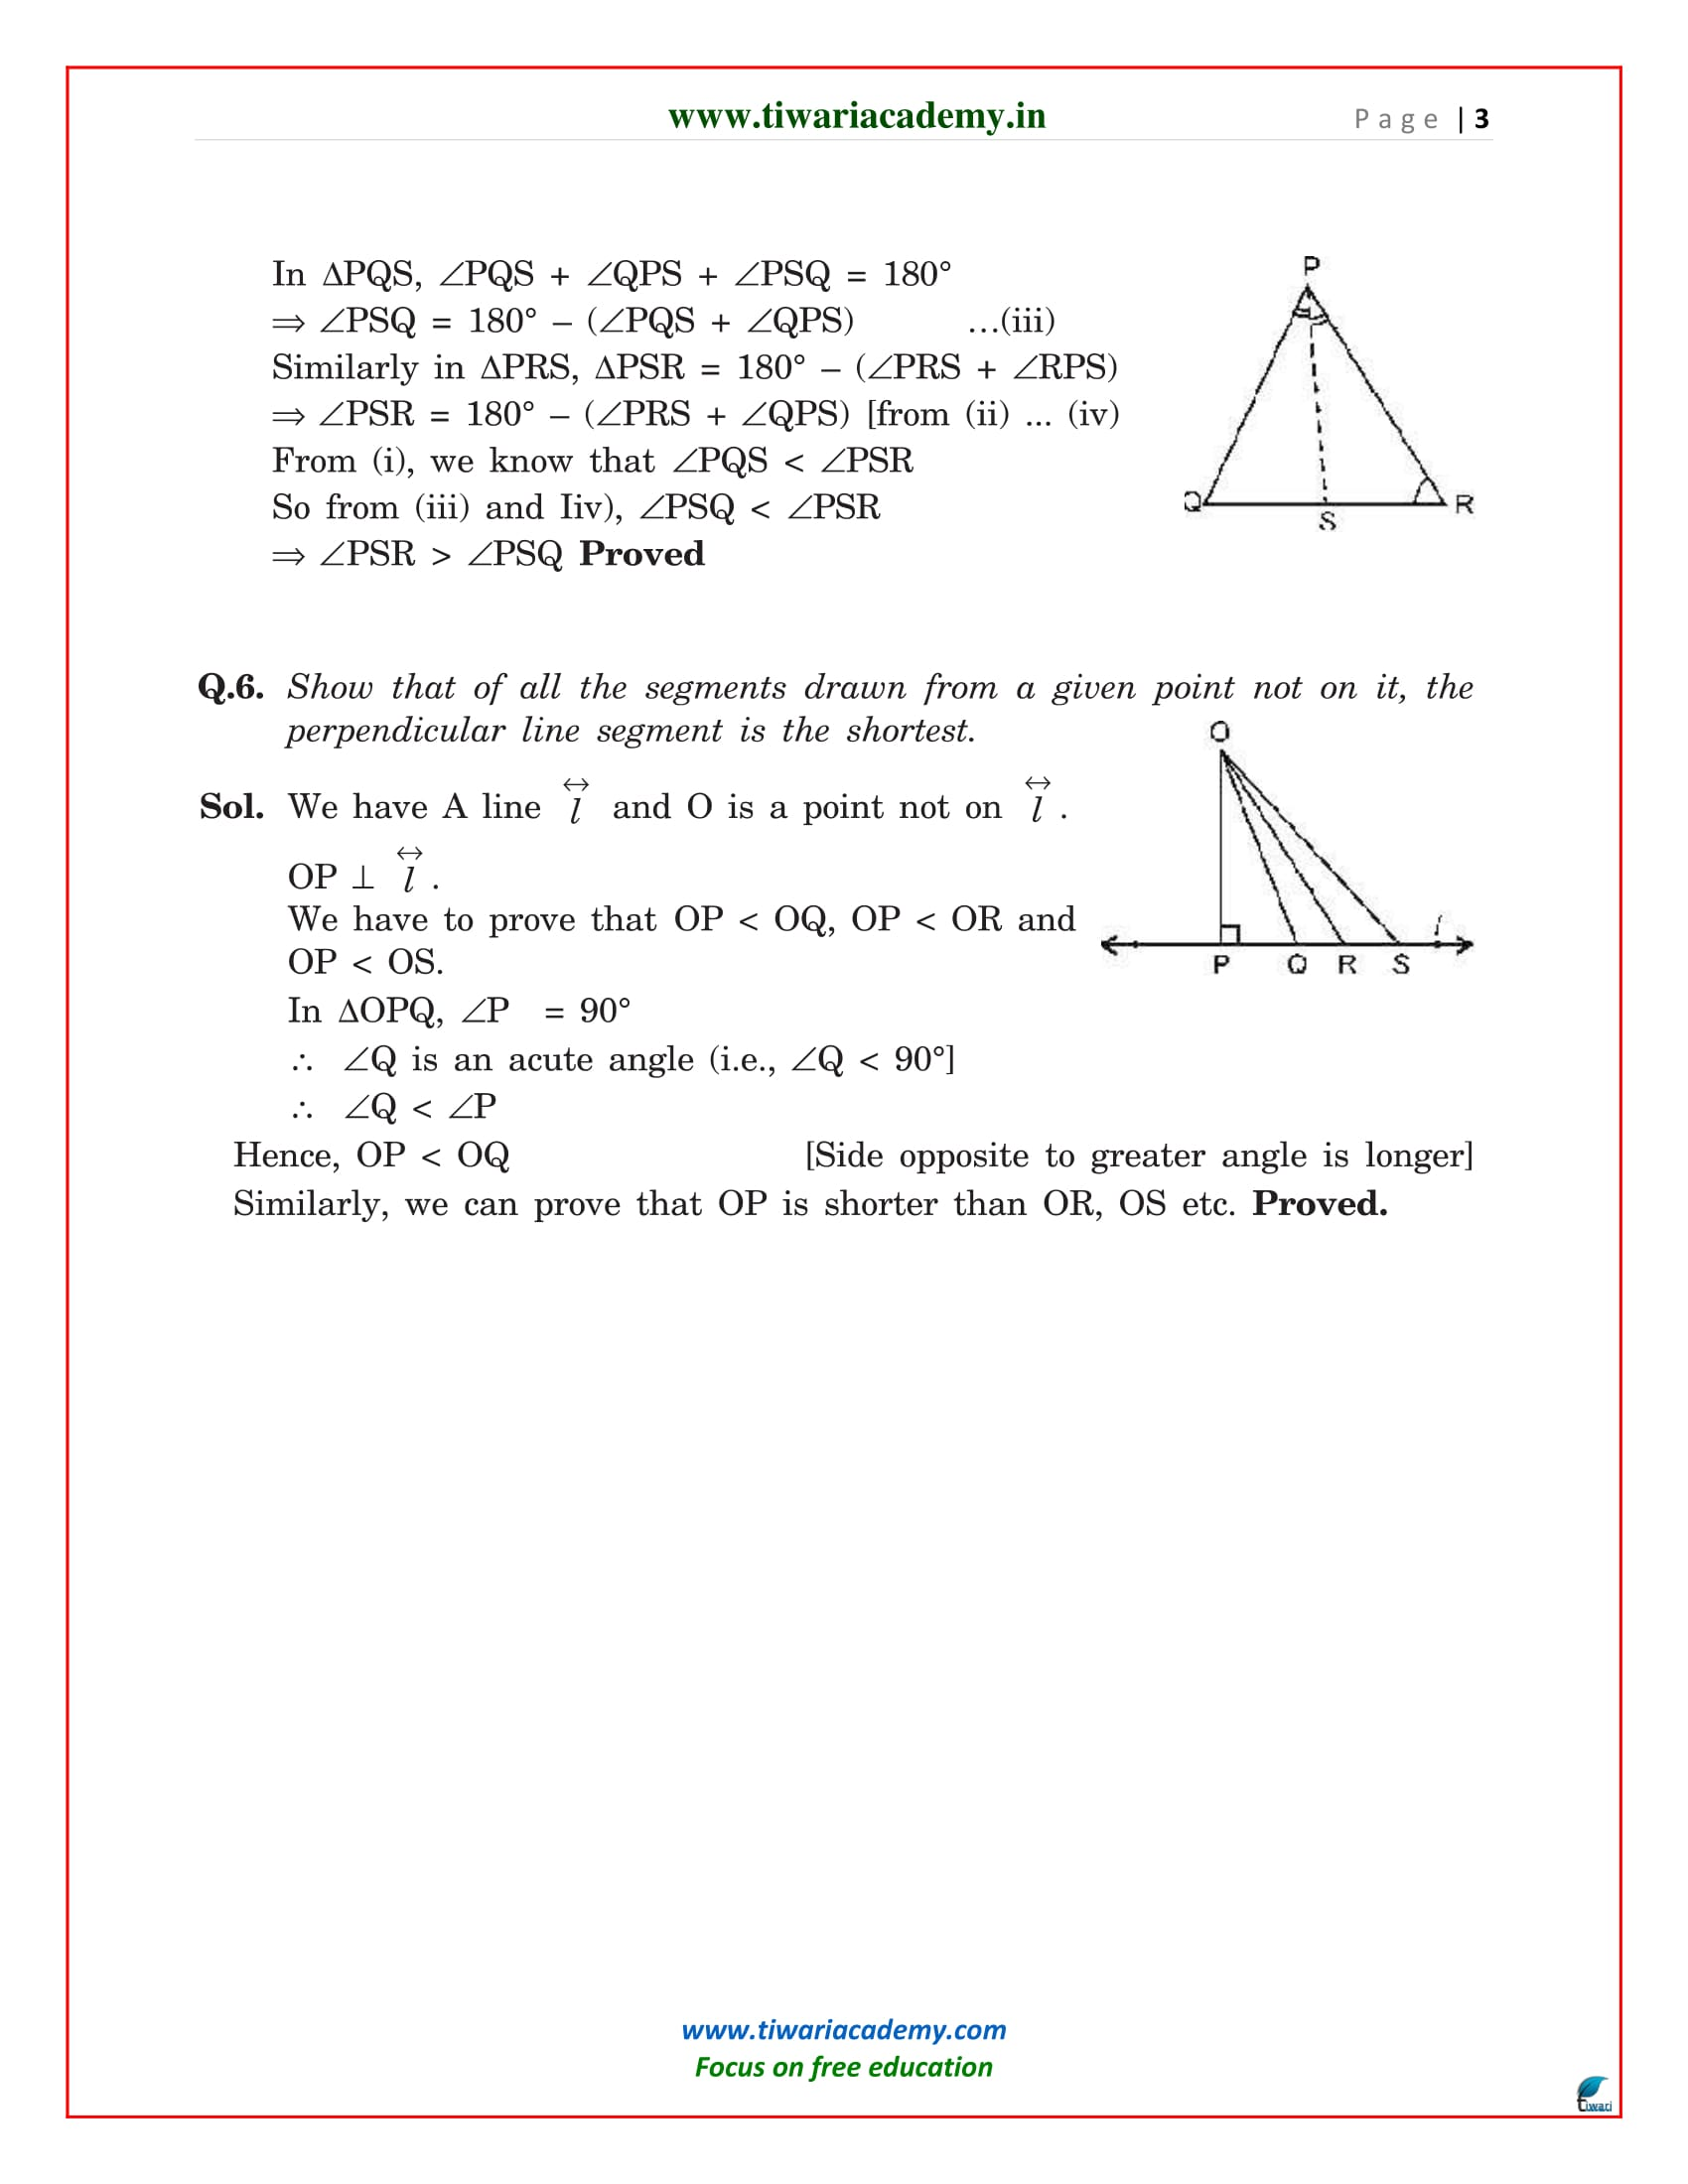 chapter 7 exercise 7.4 of class 9 maths solutions